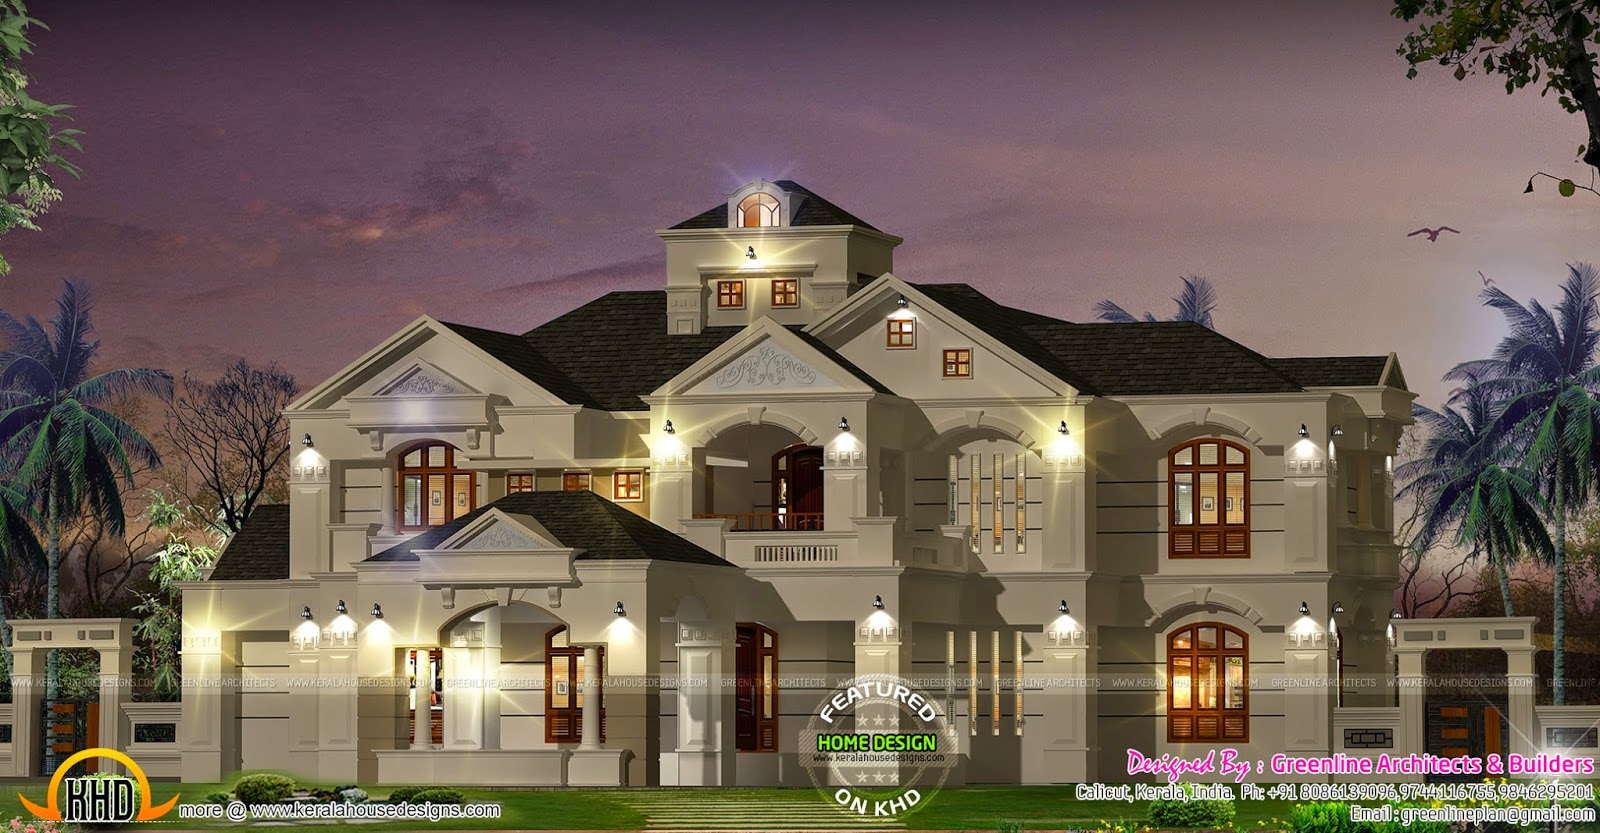 5 bedroom colonial style luxury villa kerala home design and floor plans. Black Bedroom Furniture Sets. Home Design Ideas